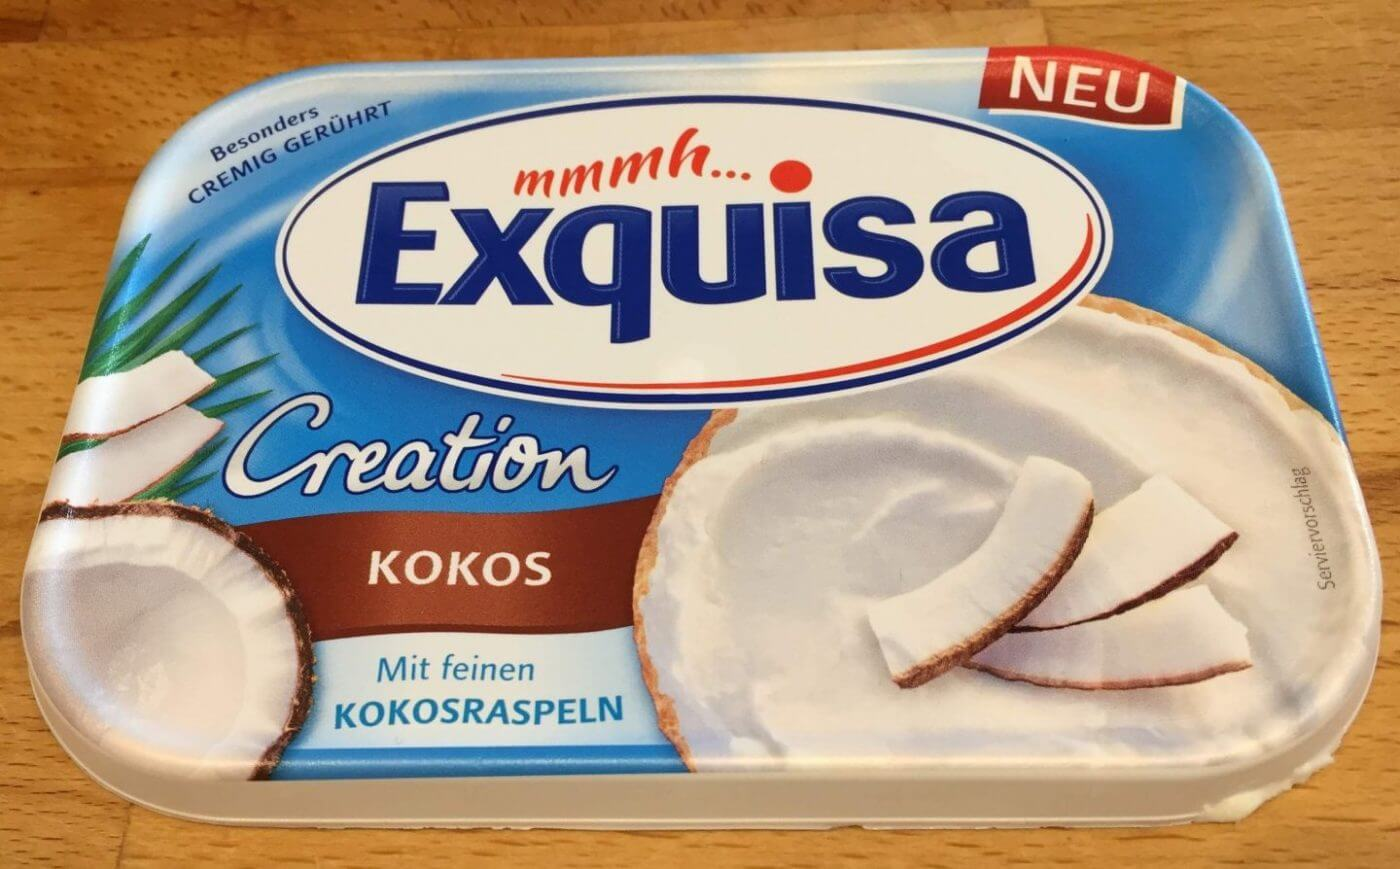 Exquisa Creation Kokos Paket